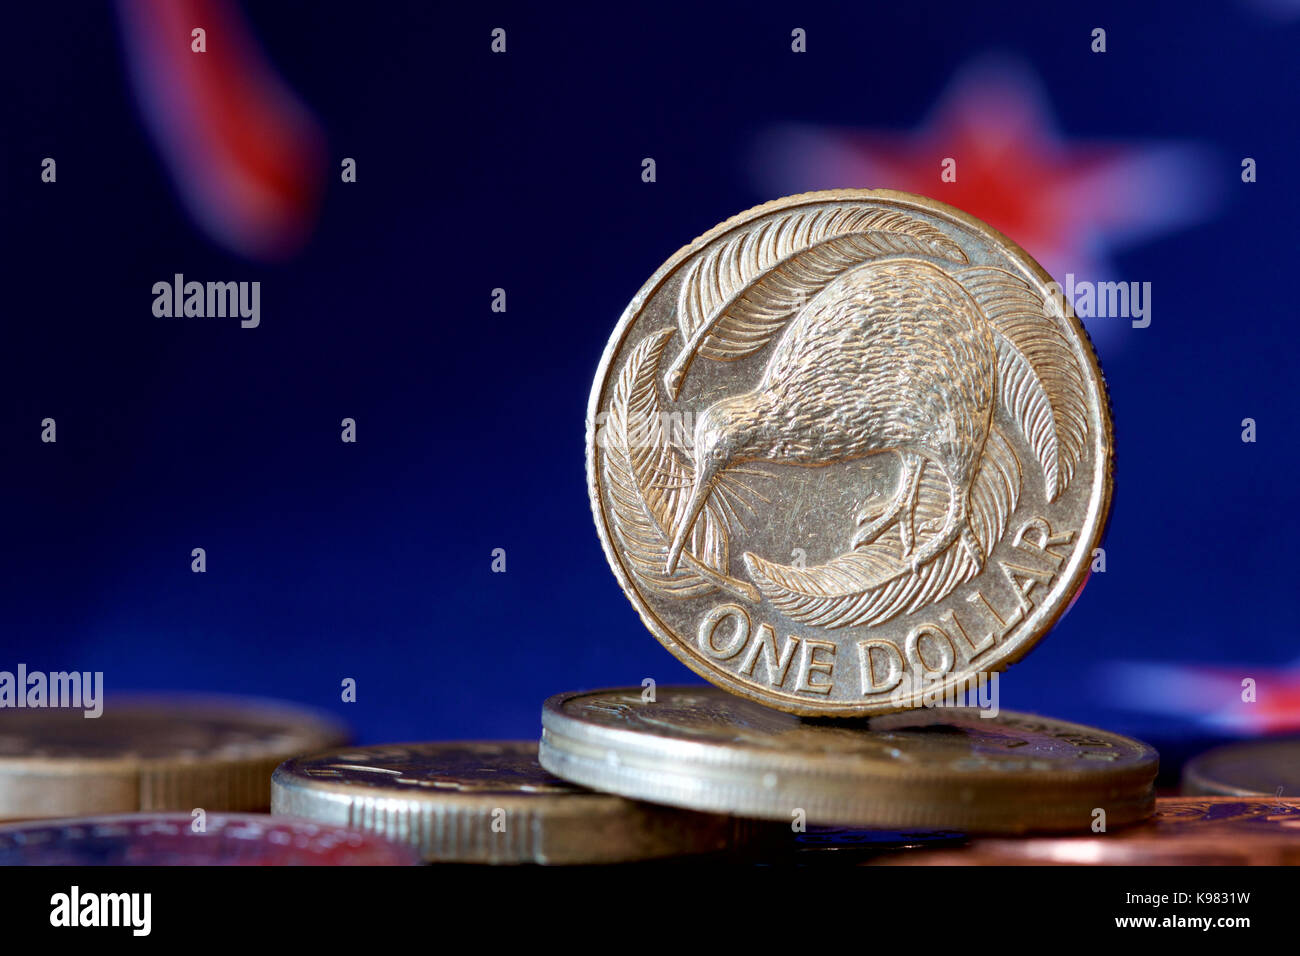 NZ one dollar coin with background of national flag. - Stock Image